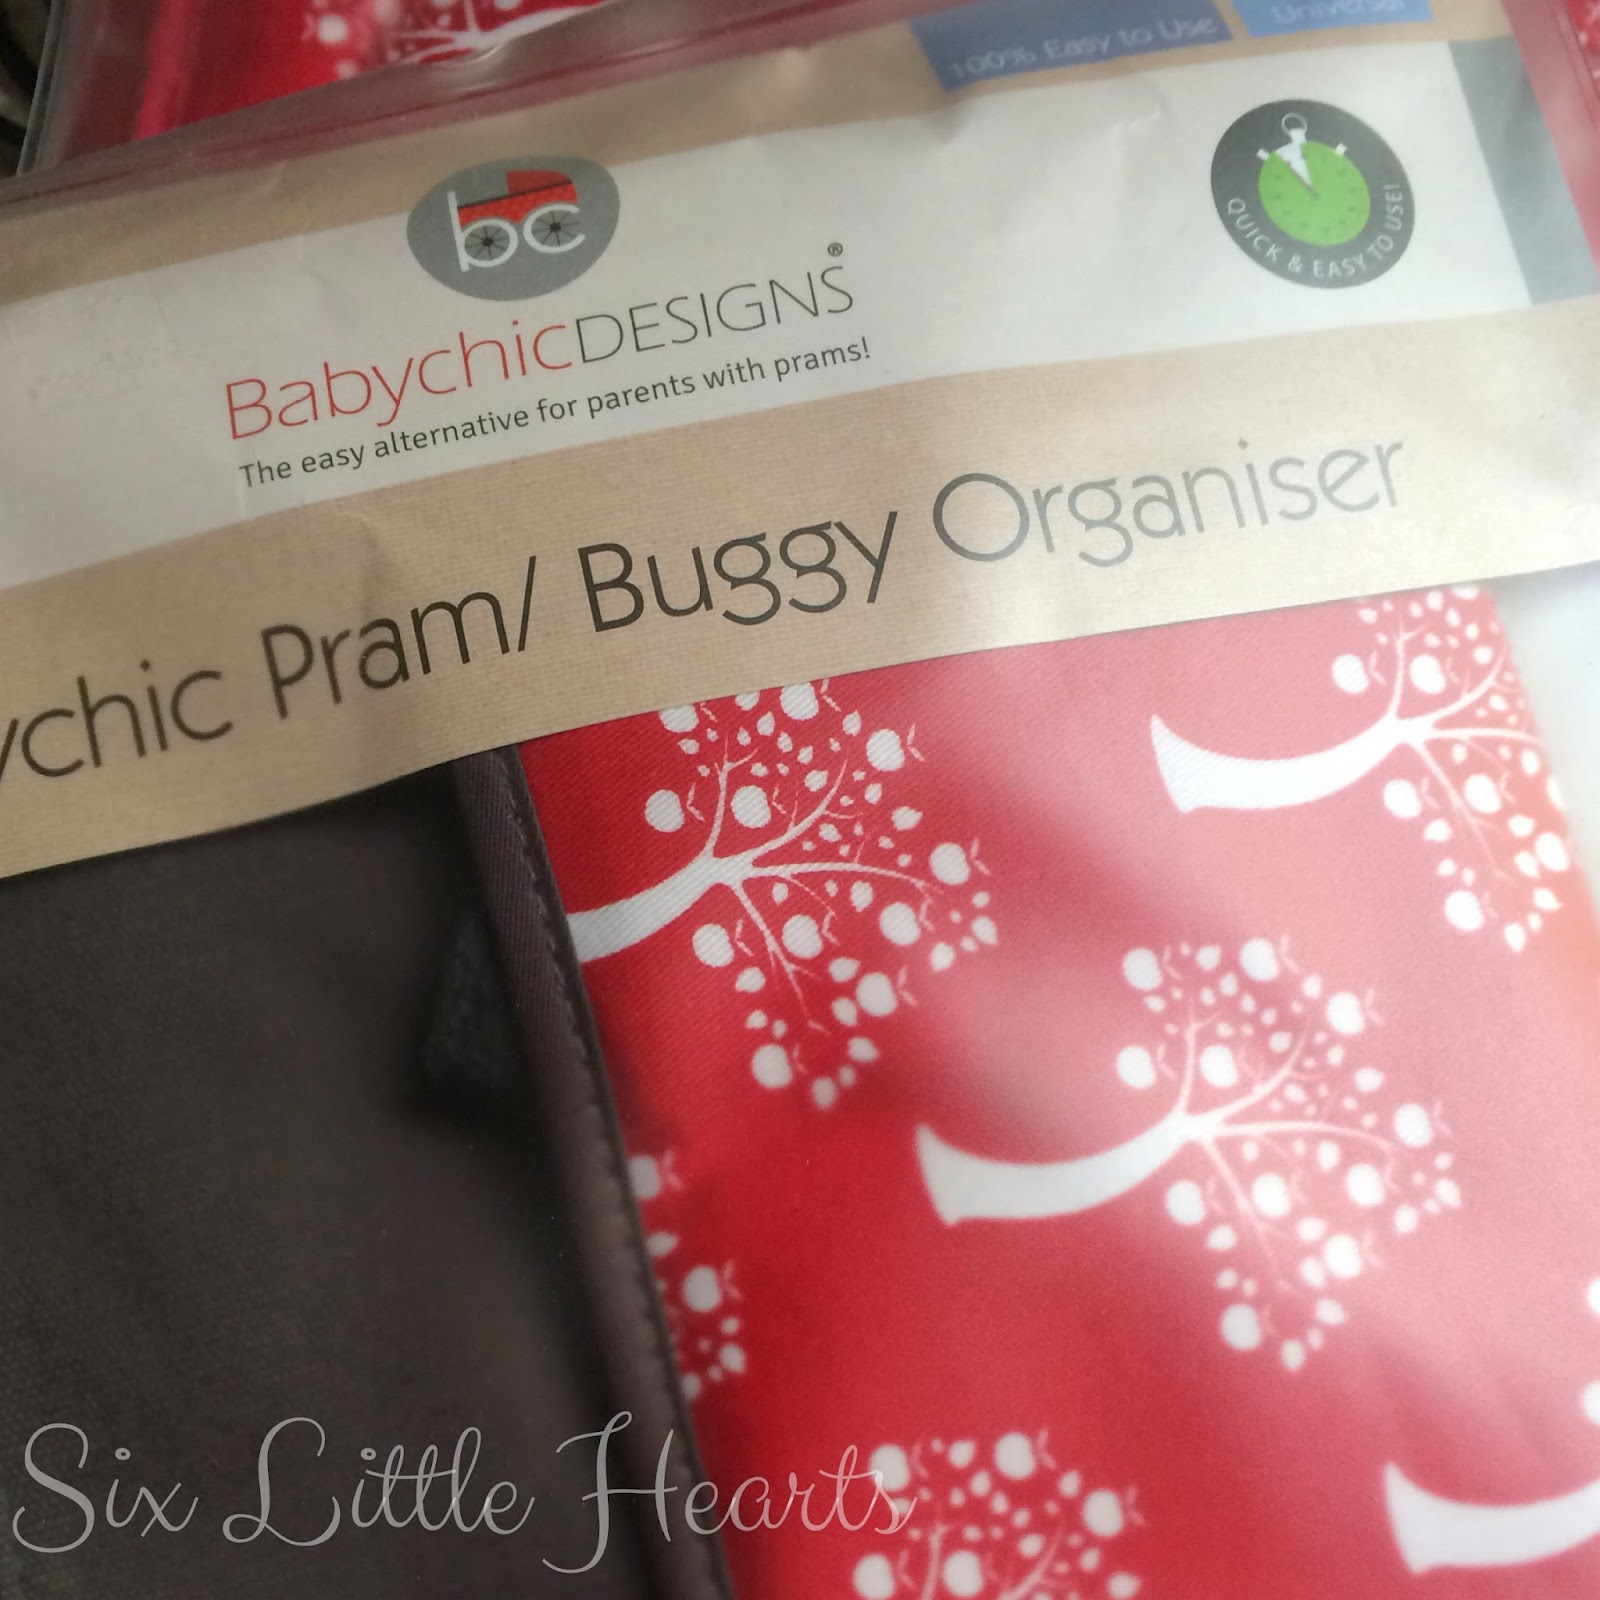 BabyChic Are A Company Founded By Mum Lauren Southern Who Accidently Fell  Into The Designer Pram Business After She Sought To Make Her Plain Black  Pram A ...